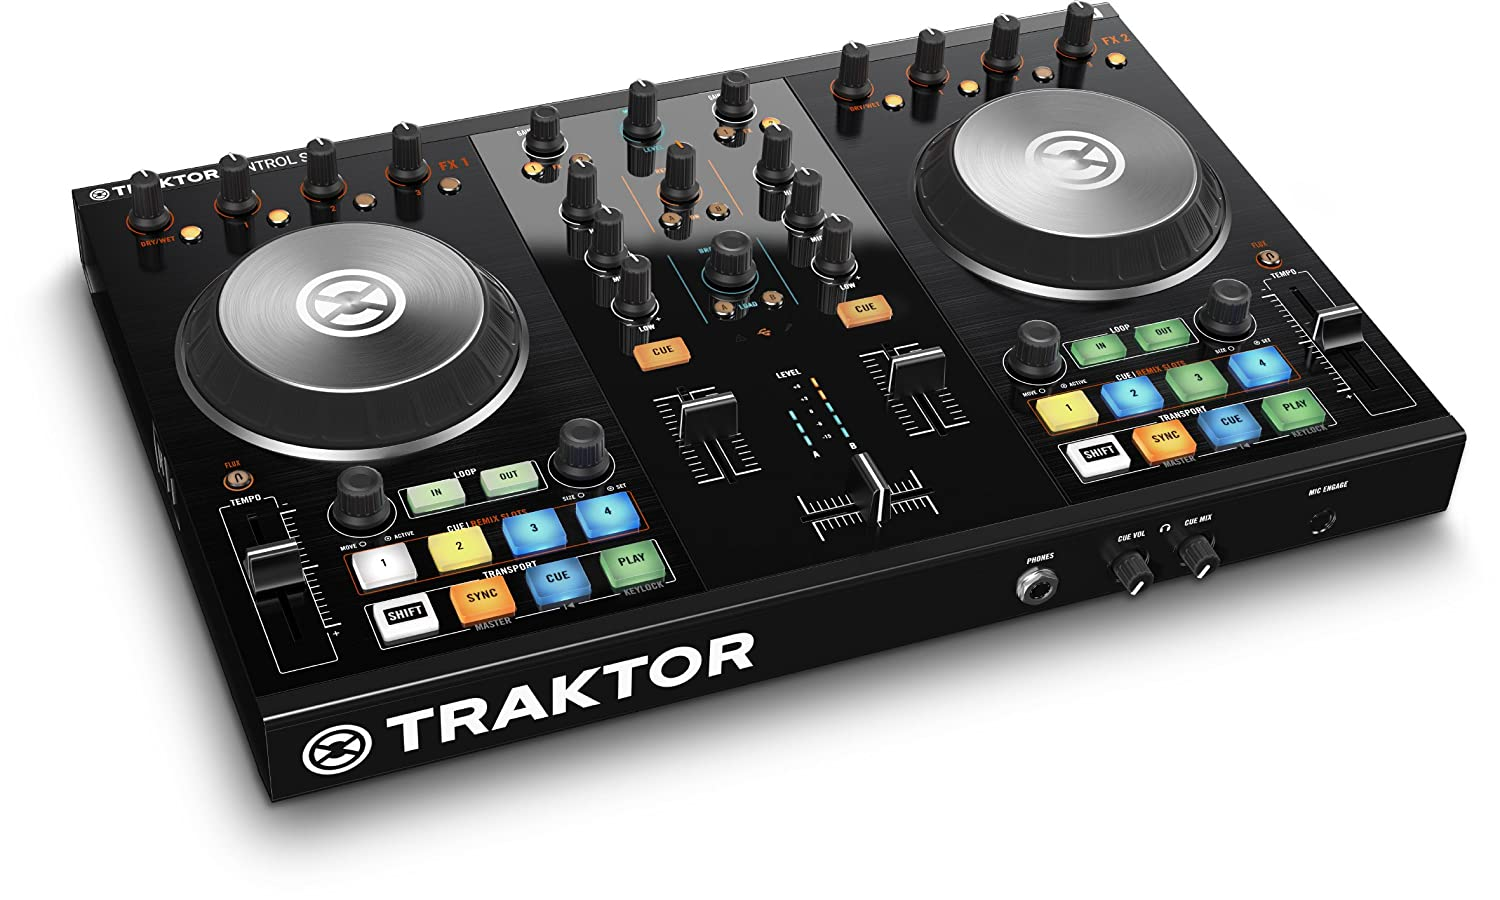 NATIVE INSTRUMENTS TRAKTOR KONTROL S2 DRIVER DOWNLOAD